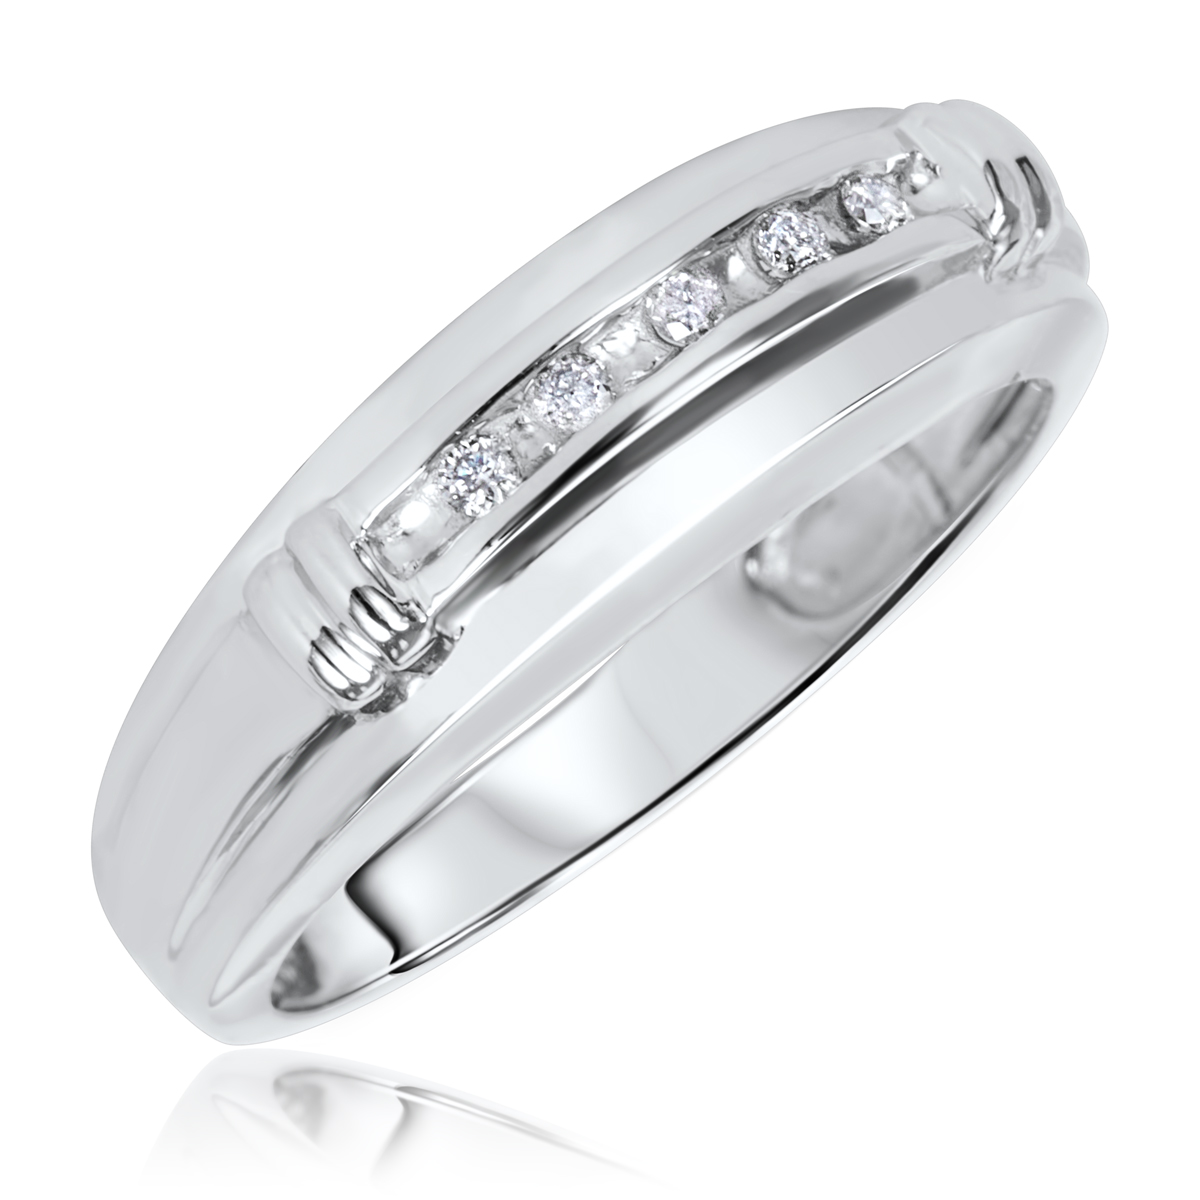 1 10 CT TW Diamond Mens Wedding Band 14K White Gold